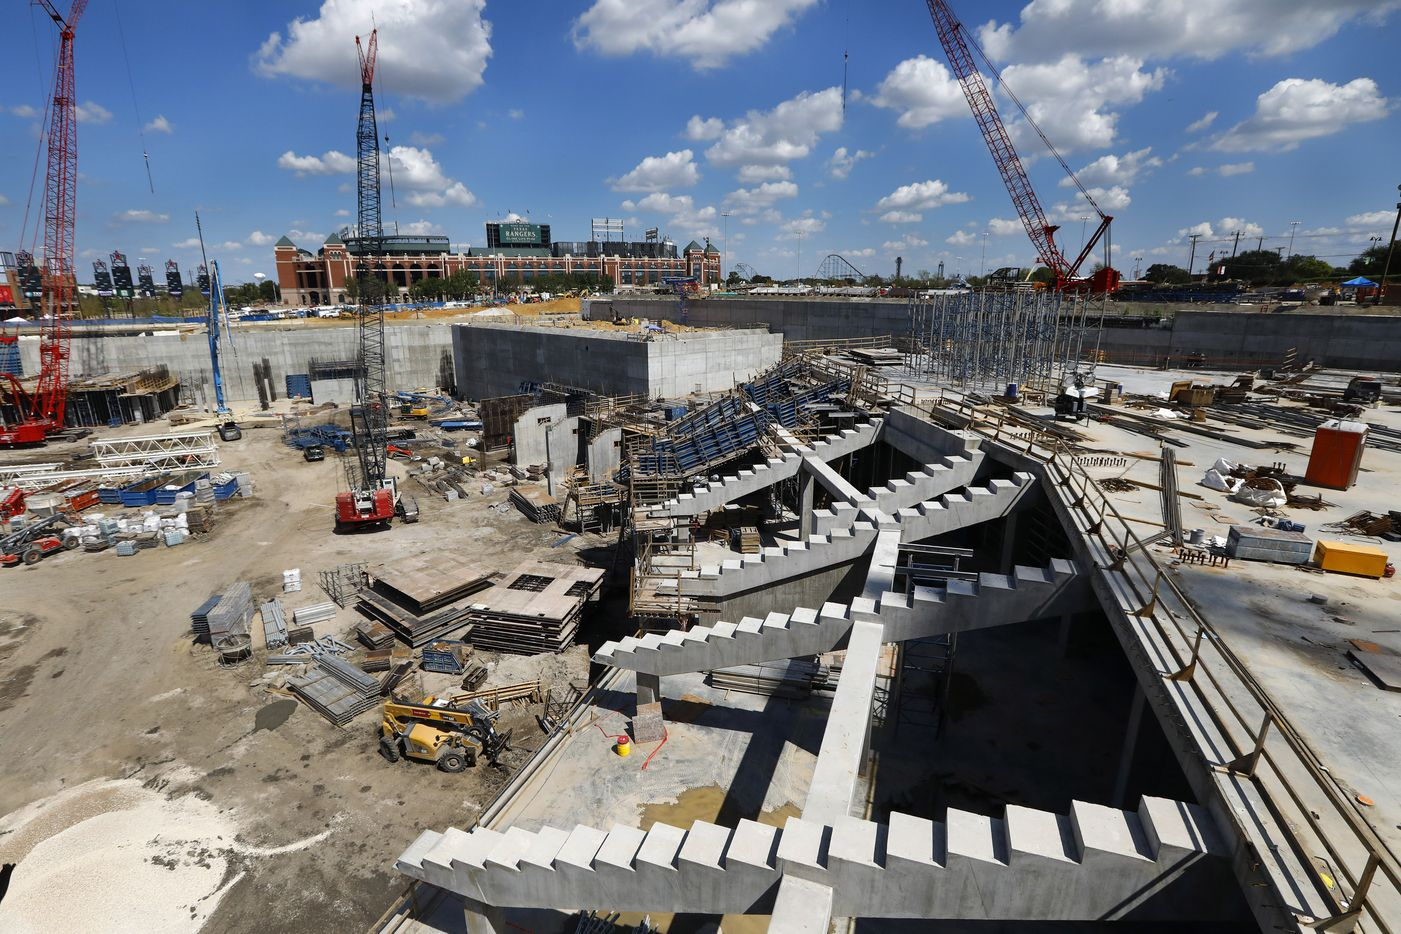 The right field seating supports are in place at the new Globe Life Field under construction in Arlington, Texas, Tuesday, September 18, 2018. The Texas Rangers celebrated the One Million Man Hours by providing a barbecue launch for it's nearly 900 workers. Rangers baseball players joined manager Jeff Banister in handing out construction helmet stickers marking the occasion. They also signed autographs and posed for photos. (Tom Fox/The Dallas Morning News)